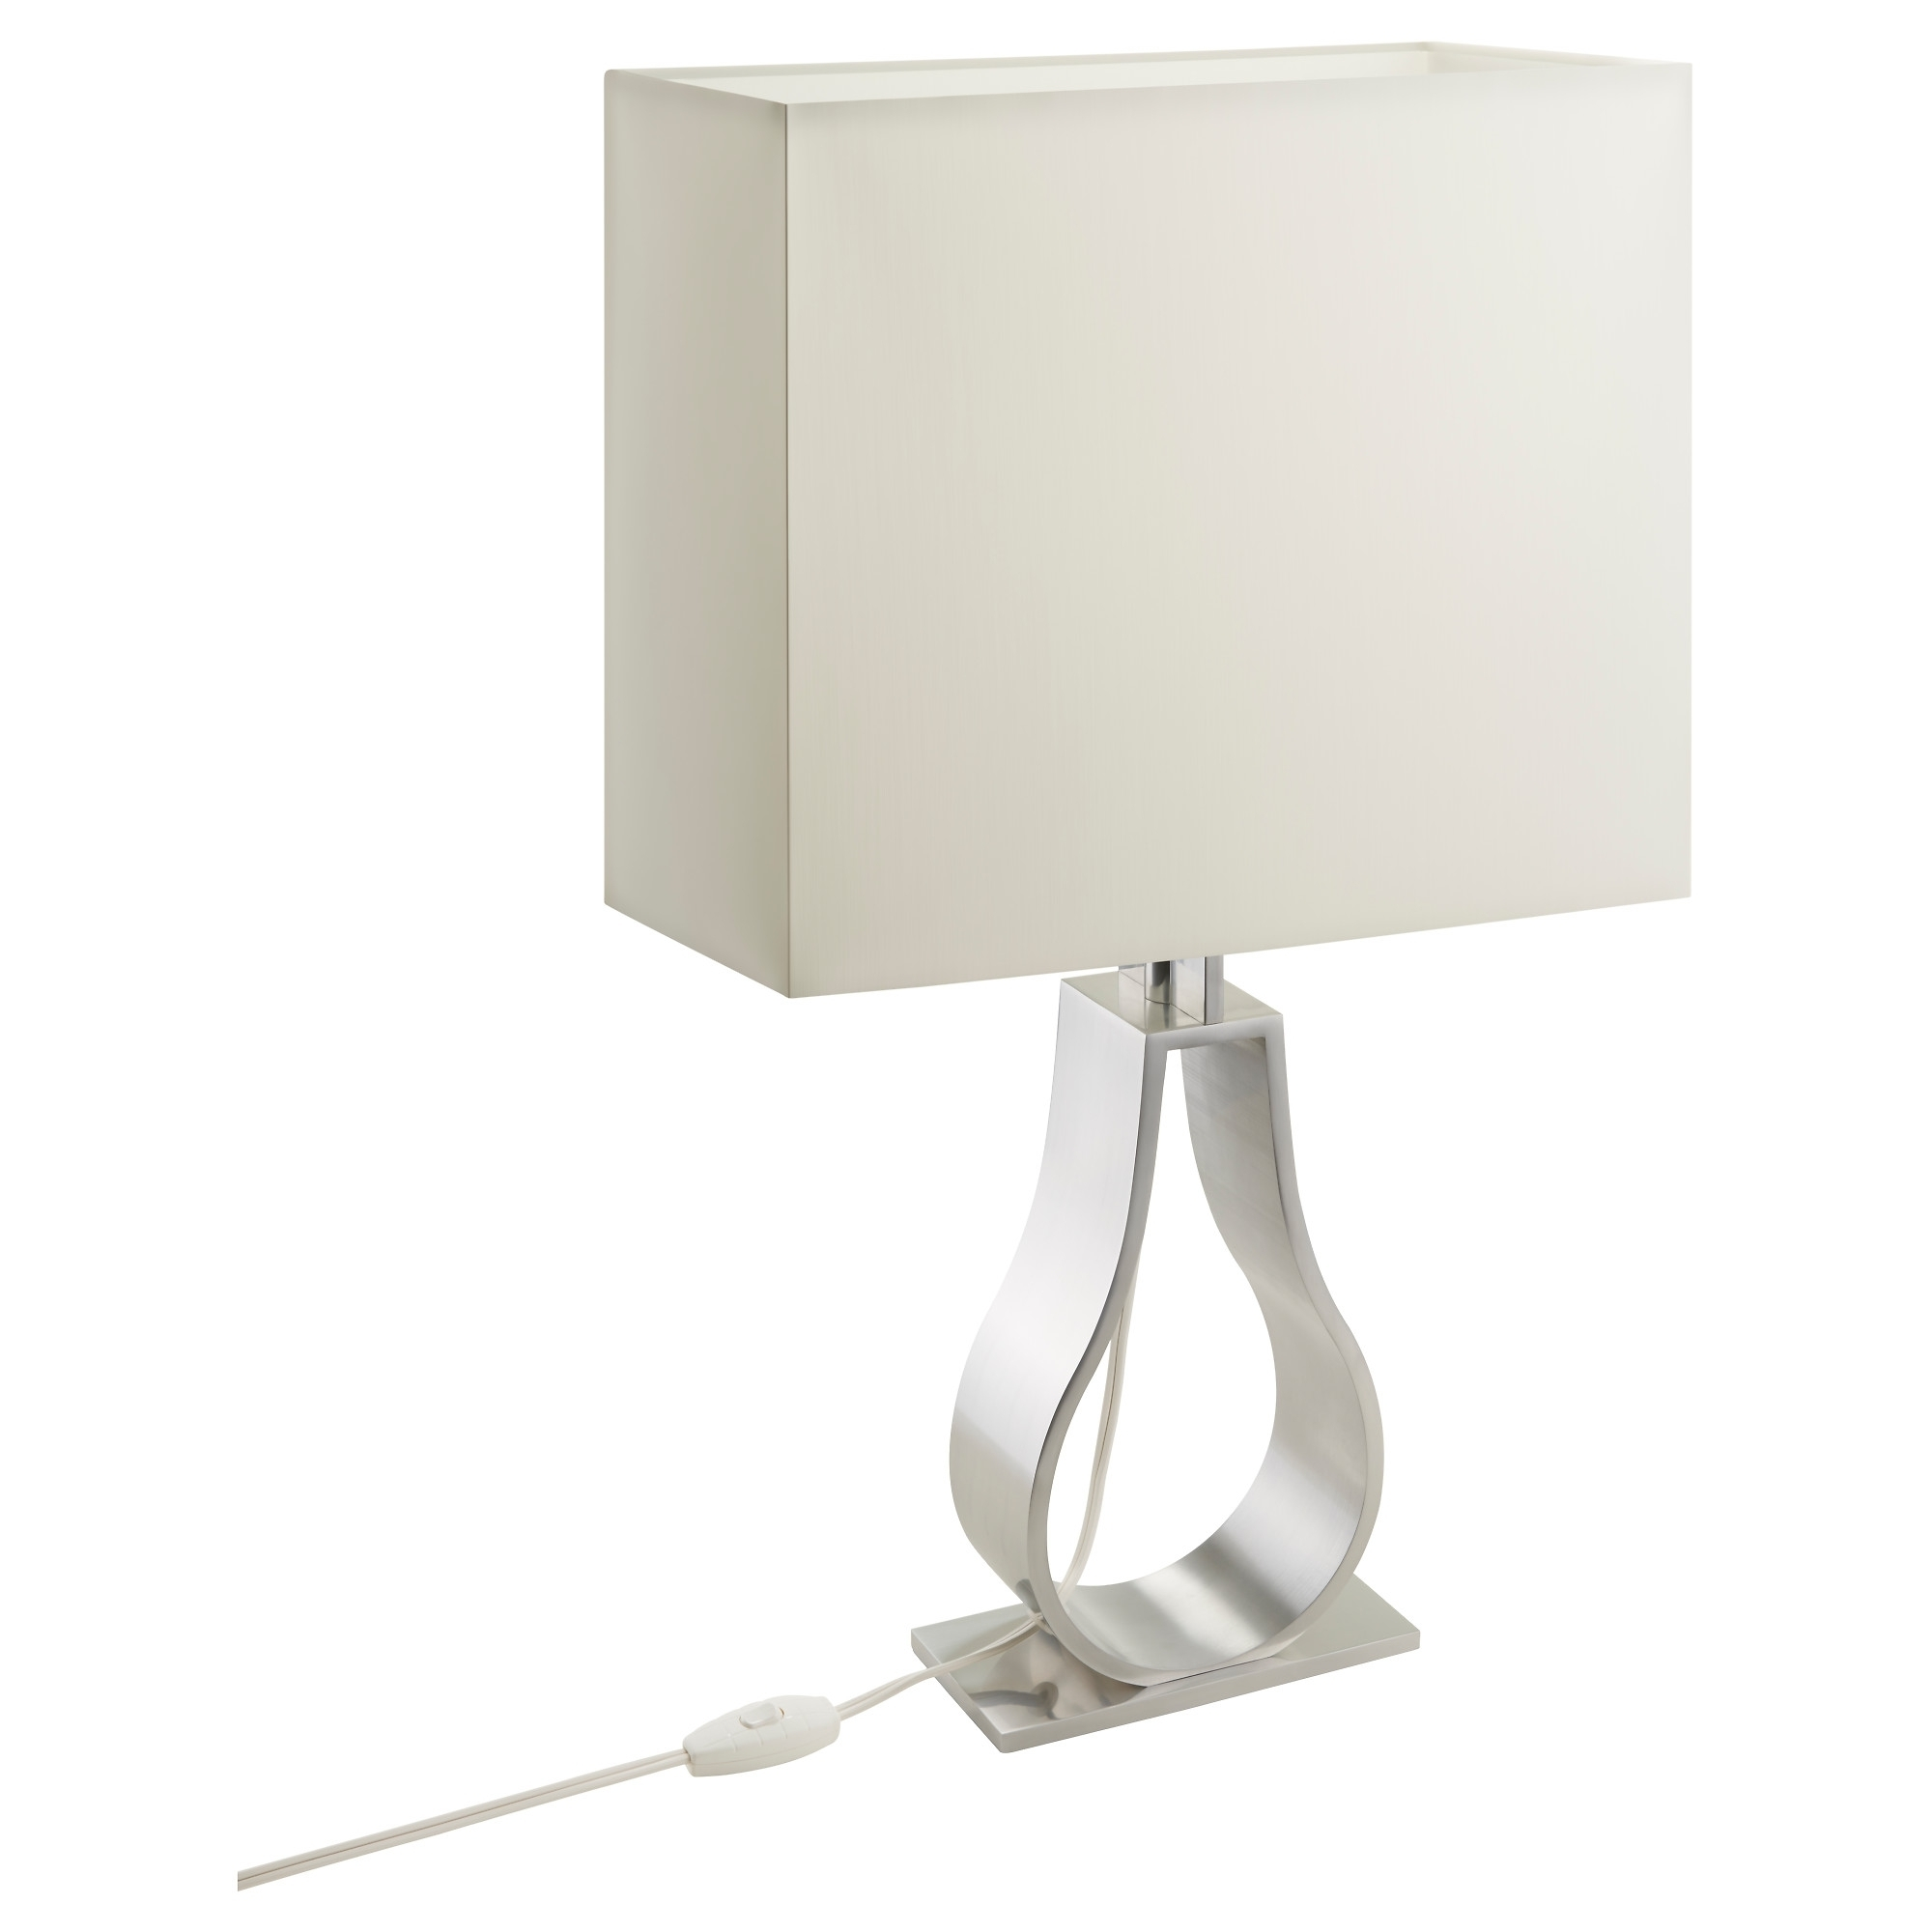 Gold Living Room Table Lamps Regarding Most Up To Date Top 66 Preeminent White Lights For Bedroom And Gold Table Lamp (View 6 of 20)